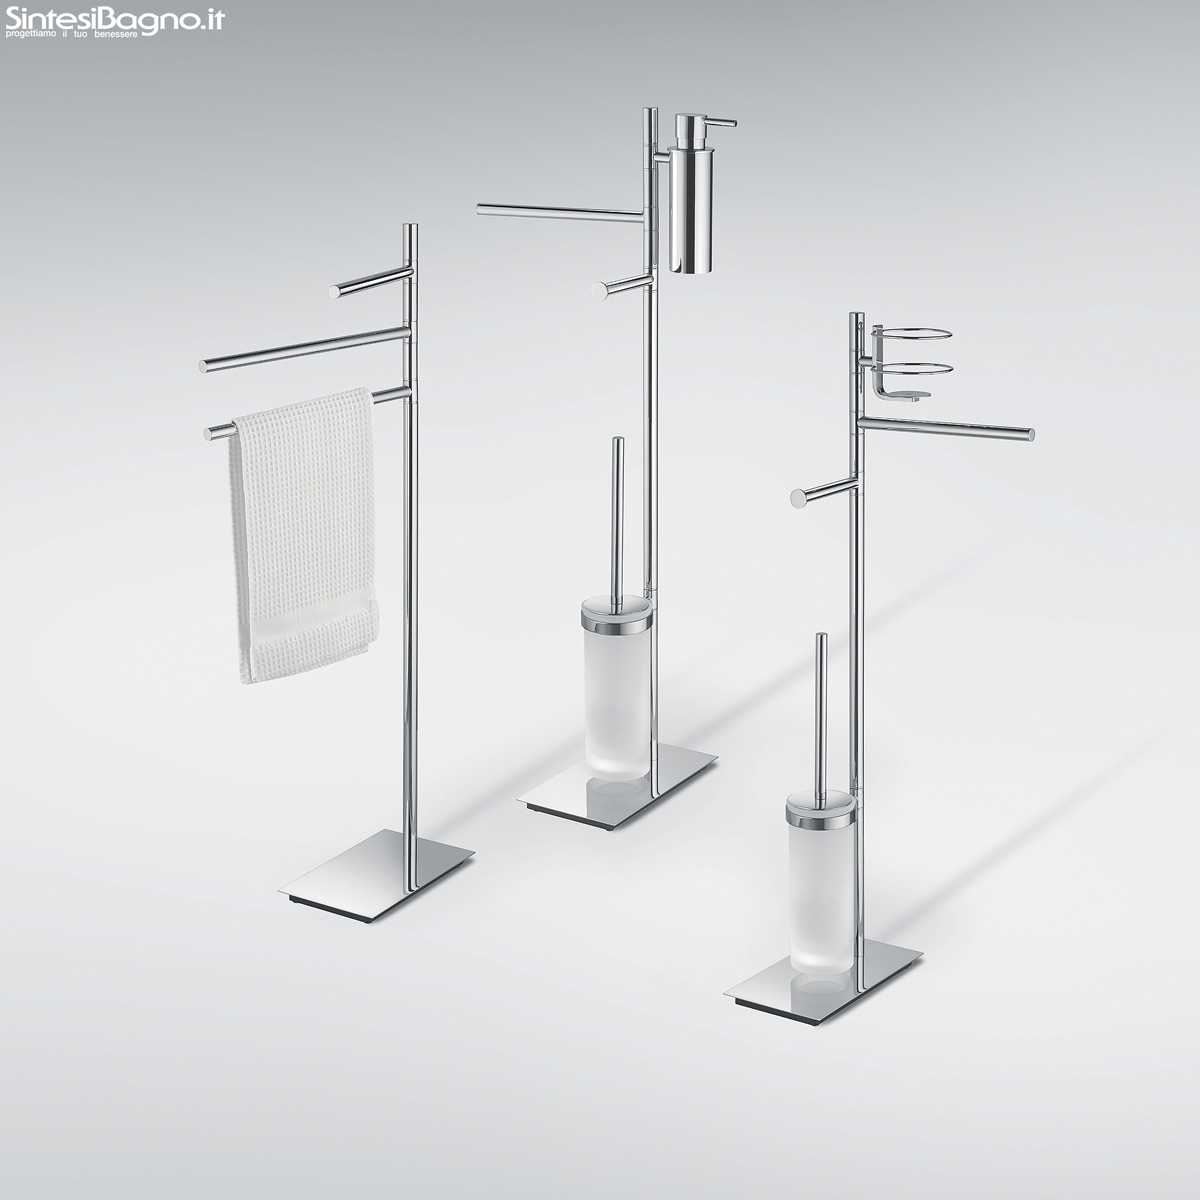 Shop Bagno Accessori Bagno Piantane Colombo Design Serie Square Shop